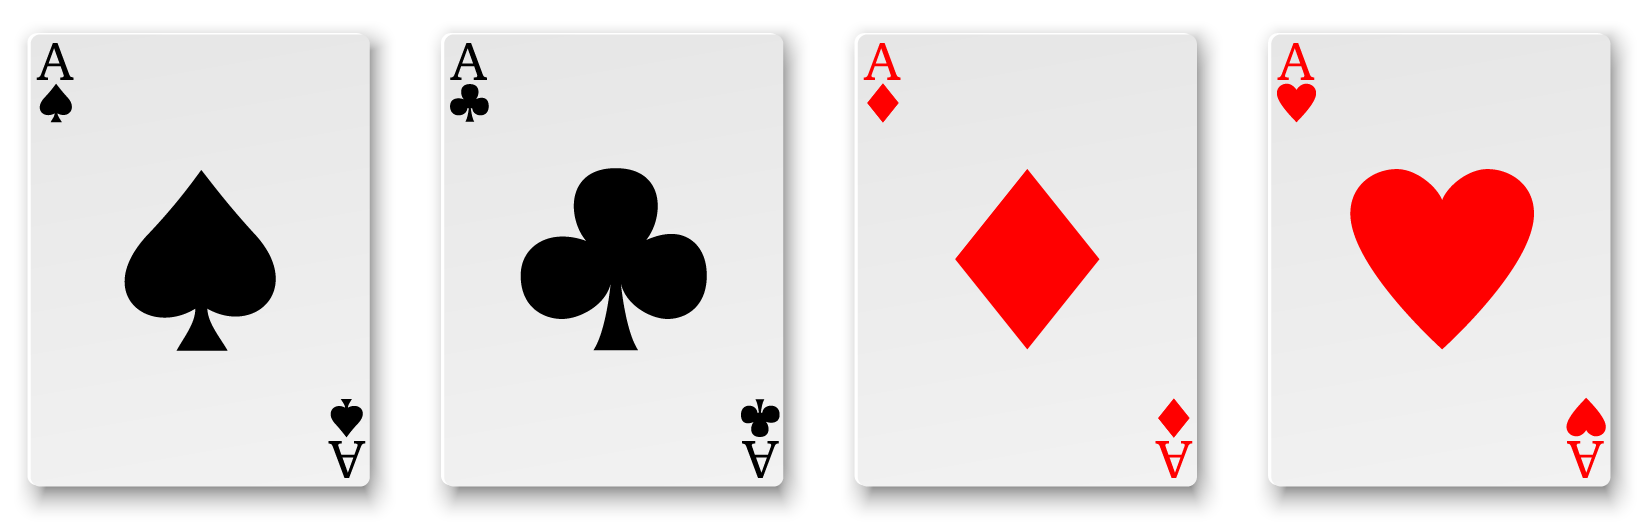 Aces in a Deck